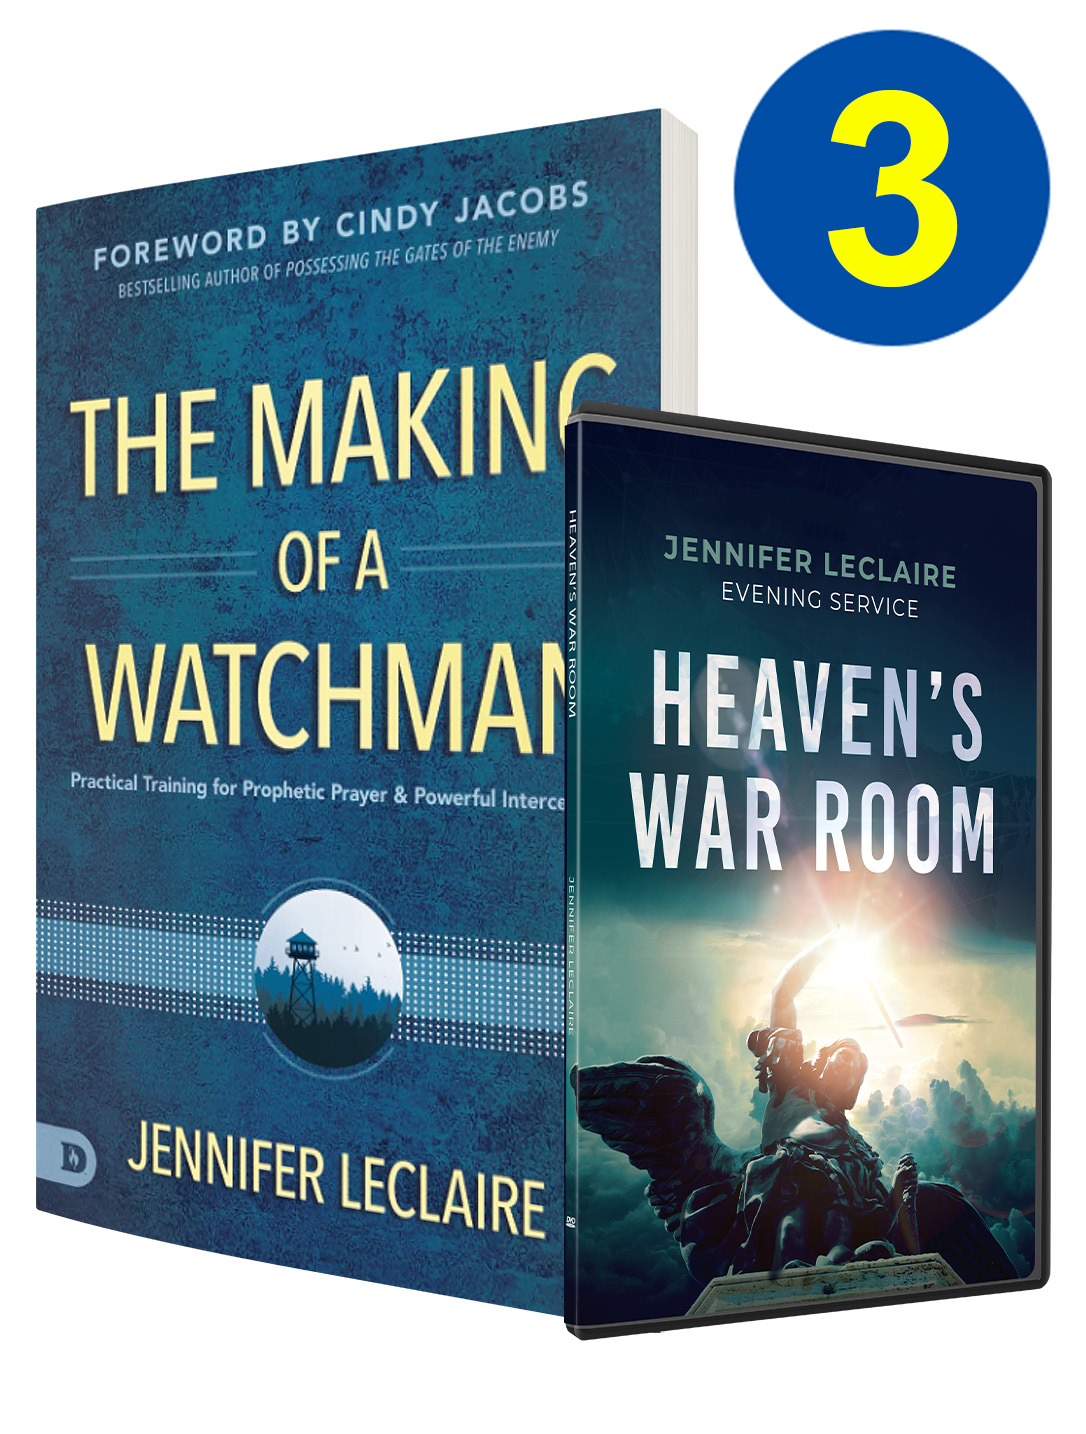 The Making Of A Watchman 3 Book & DVD Offer